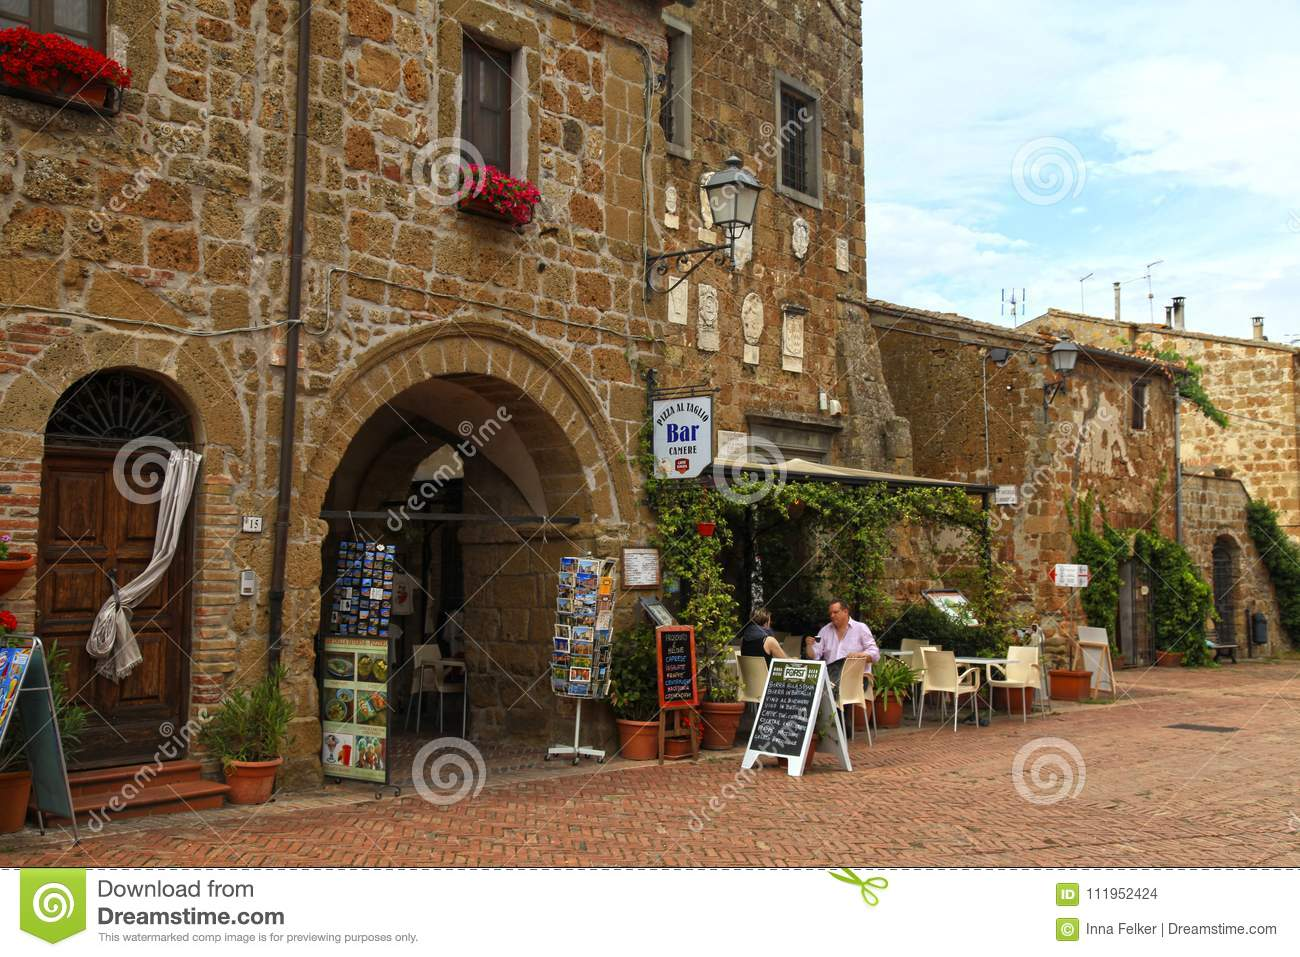 Tourists relax in outdoor cafe on central square of Sovana, Tuscany, Italy